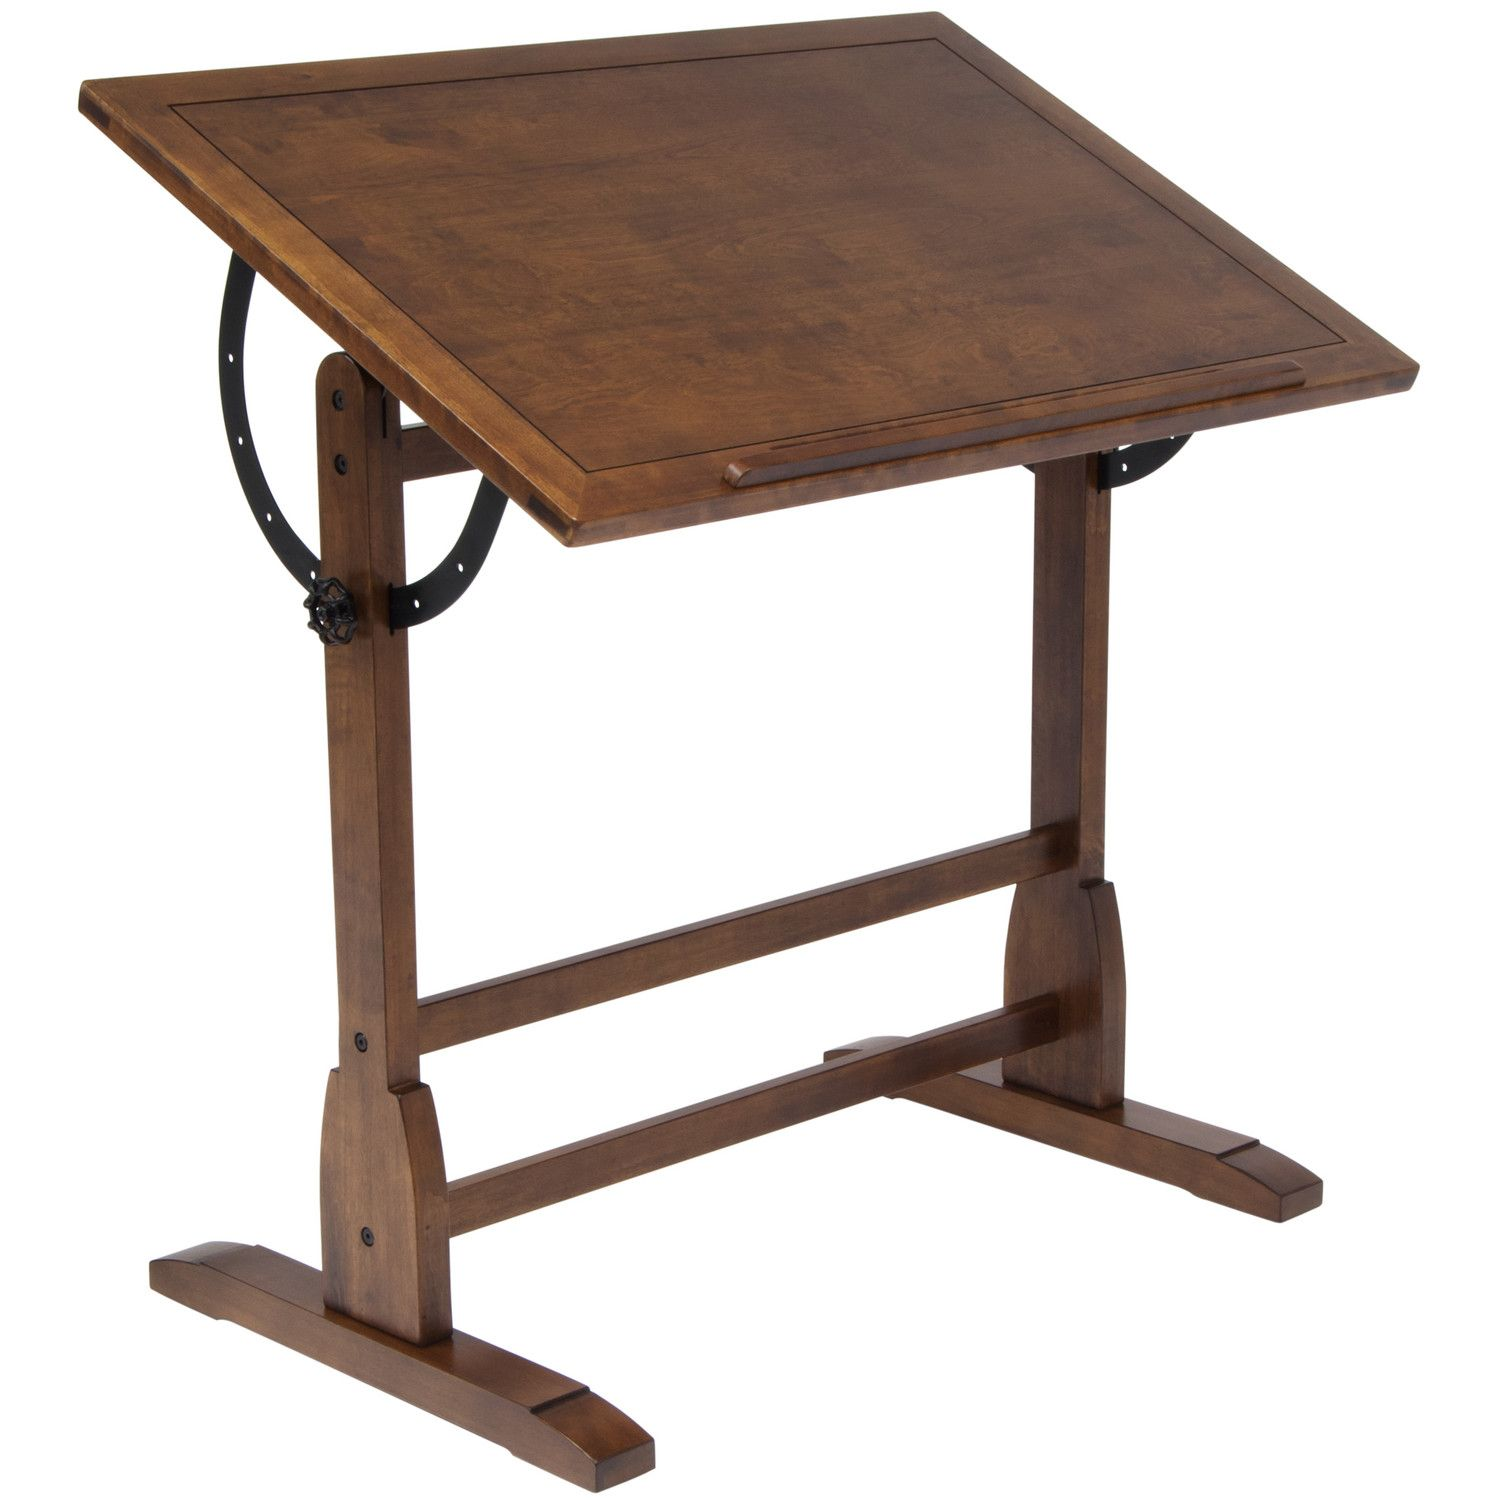 Features Adjustable angle table top from flat to 90 degrees